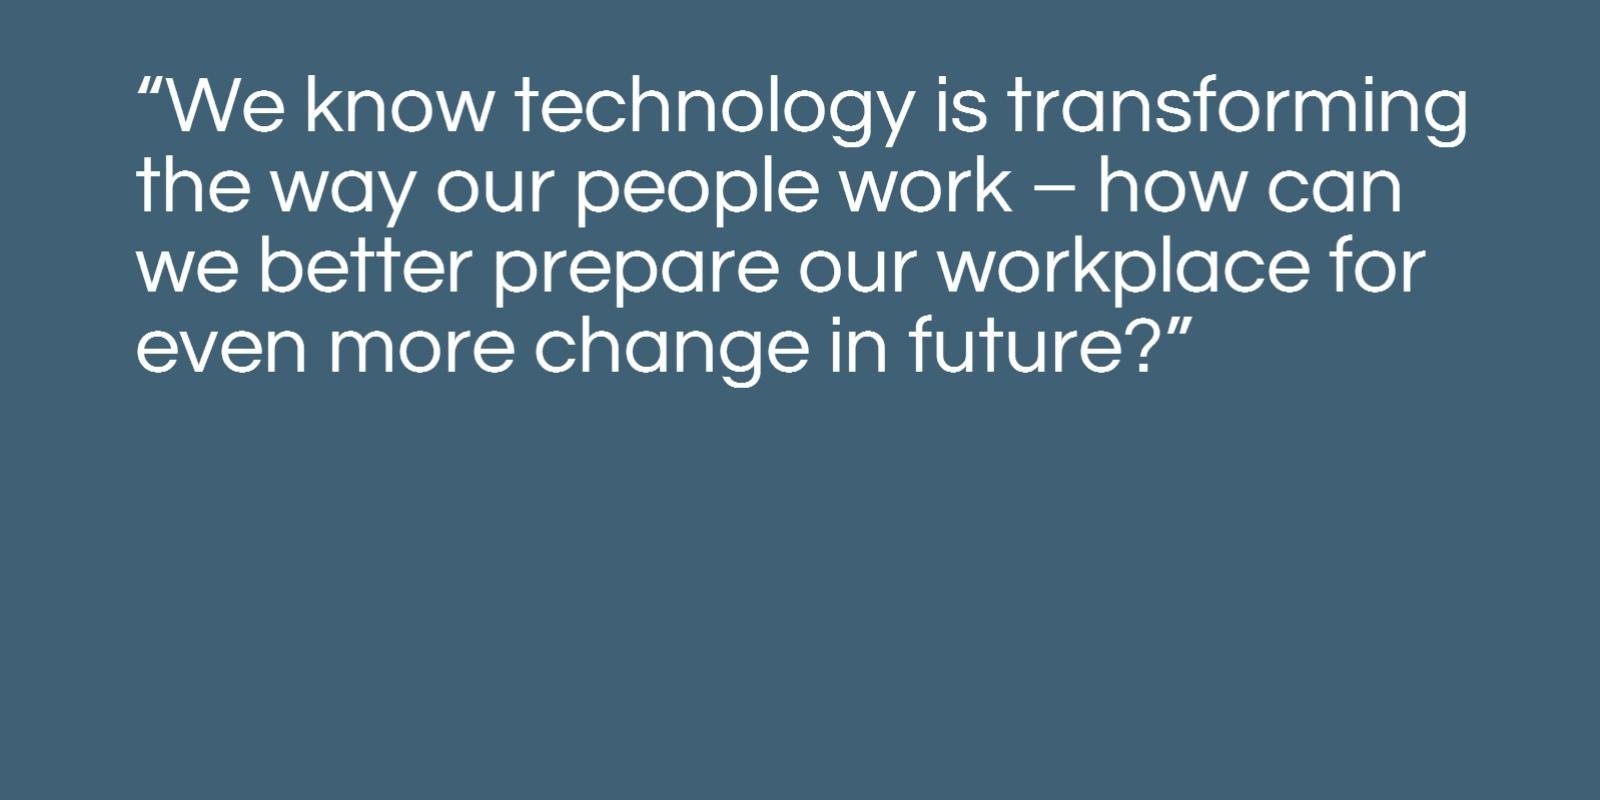 Image of how technology is transforming the way people work.